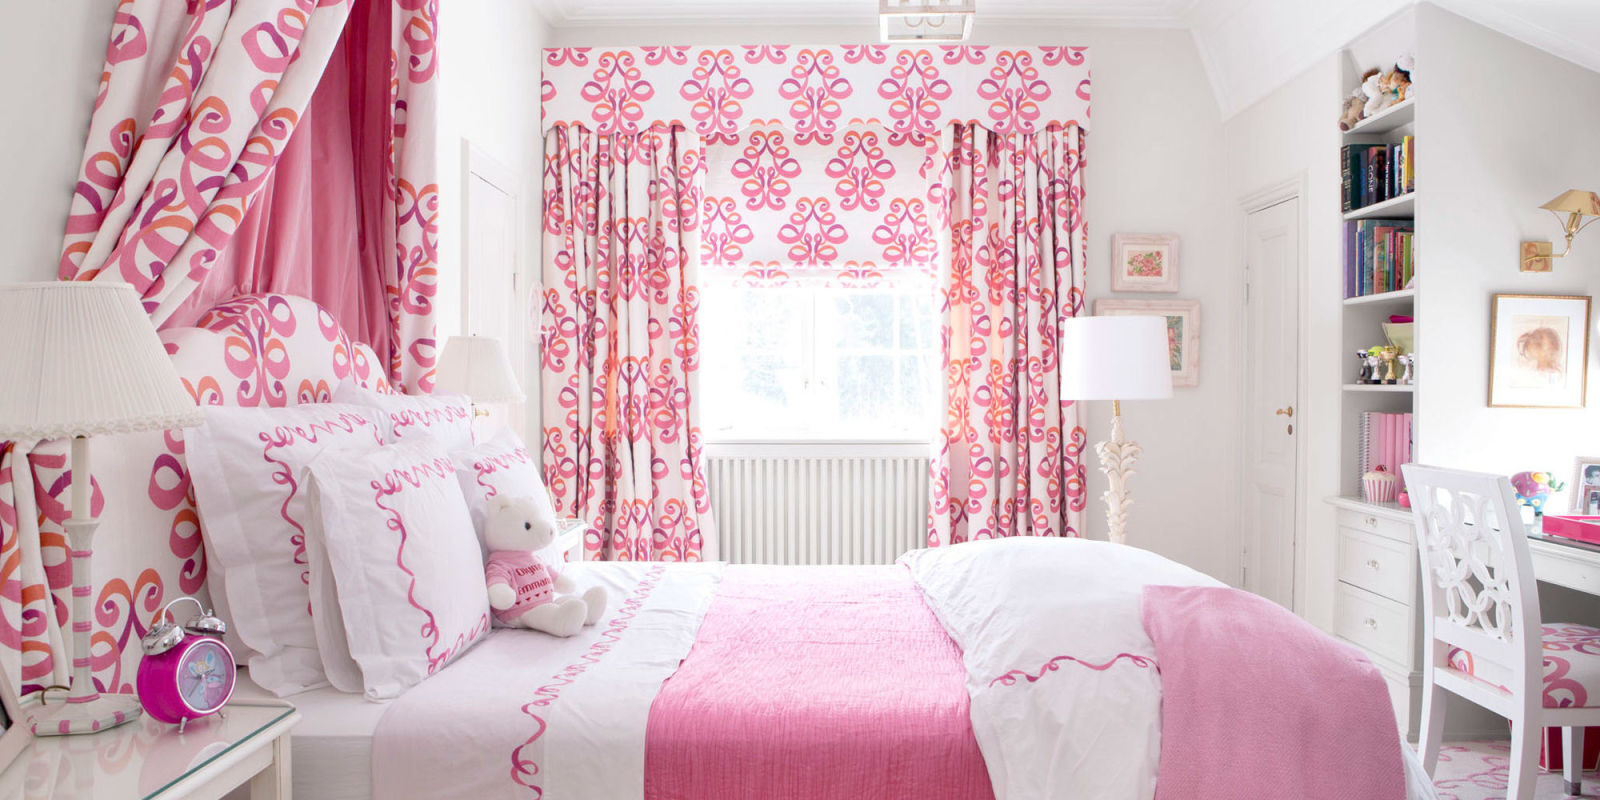 Pink bedroom decoration - Pink Bedroom Decoration 36